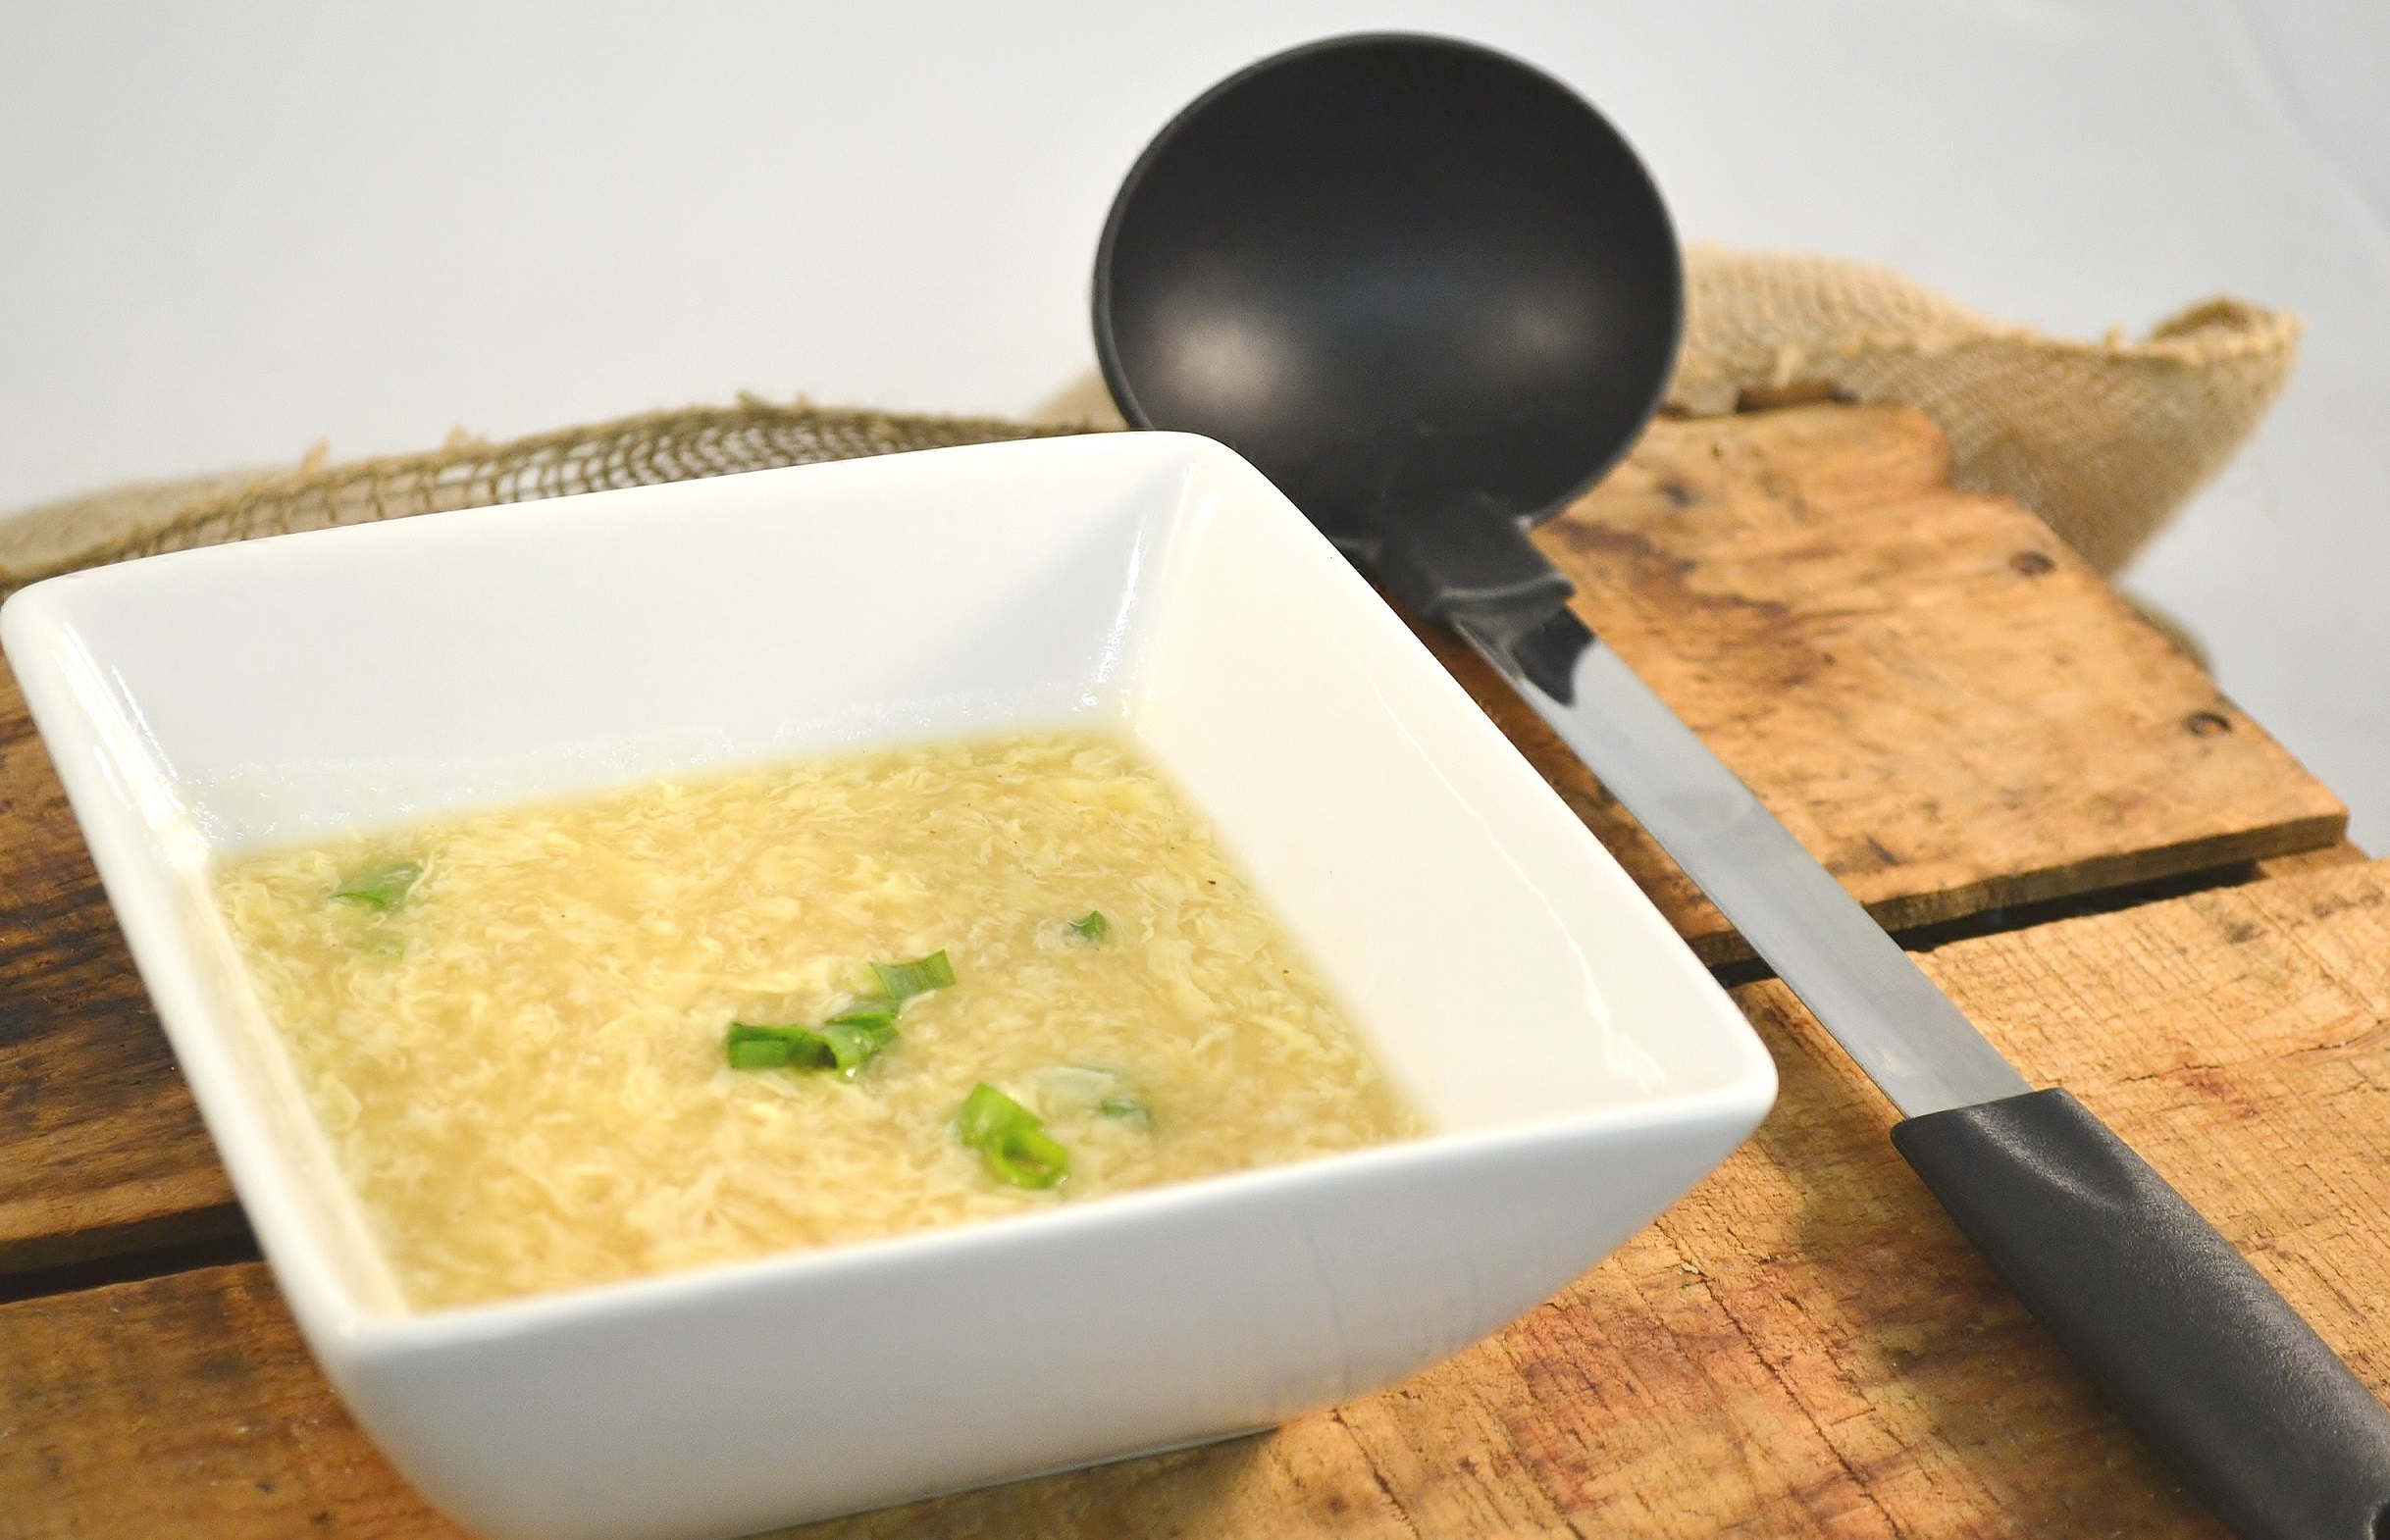 A delicious bowl of homemade egg drop soup with a Rada Soup Ladle.